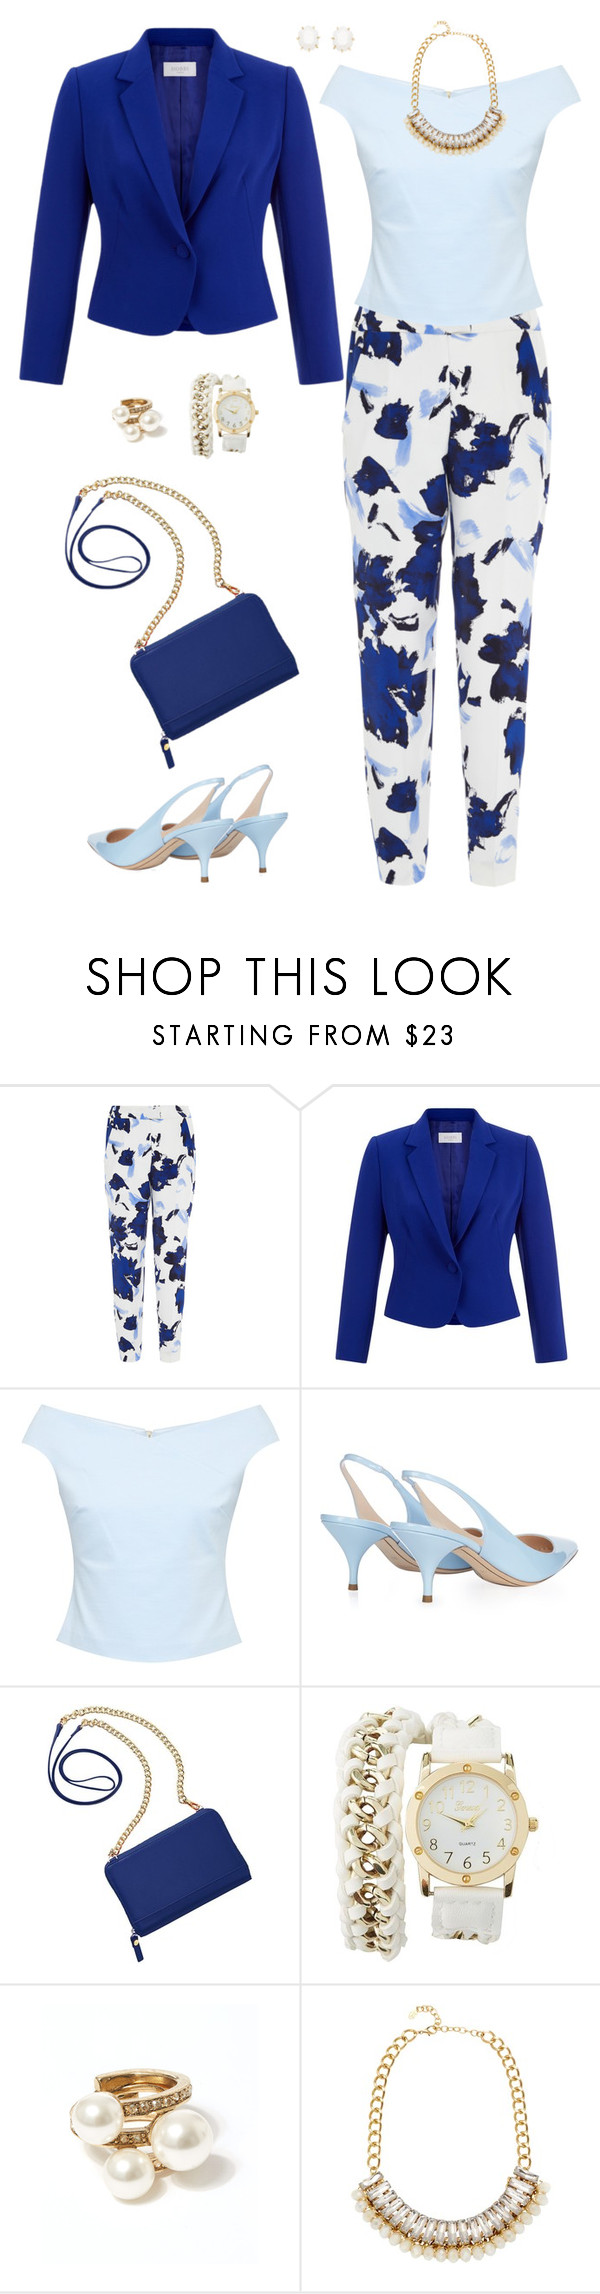 """Untitled #1527"" by ruru833 ❤ liked on Polyvore featuring Oscar de la Renta, Hobbs, Ted Baker, Nina Ricci, TravelSmith, Charlotte Russe, Adele Marie and Kendra Scott"